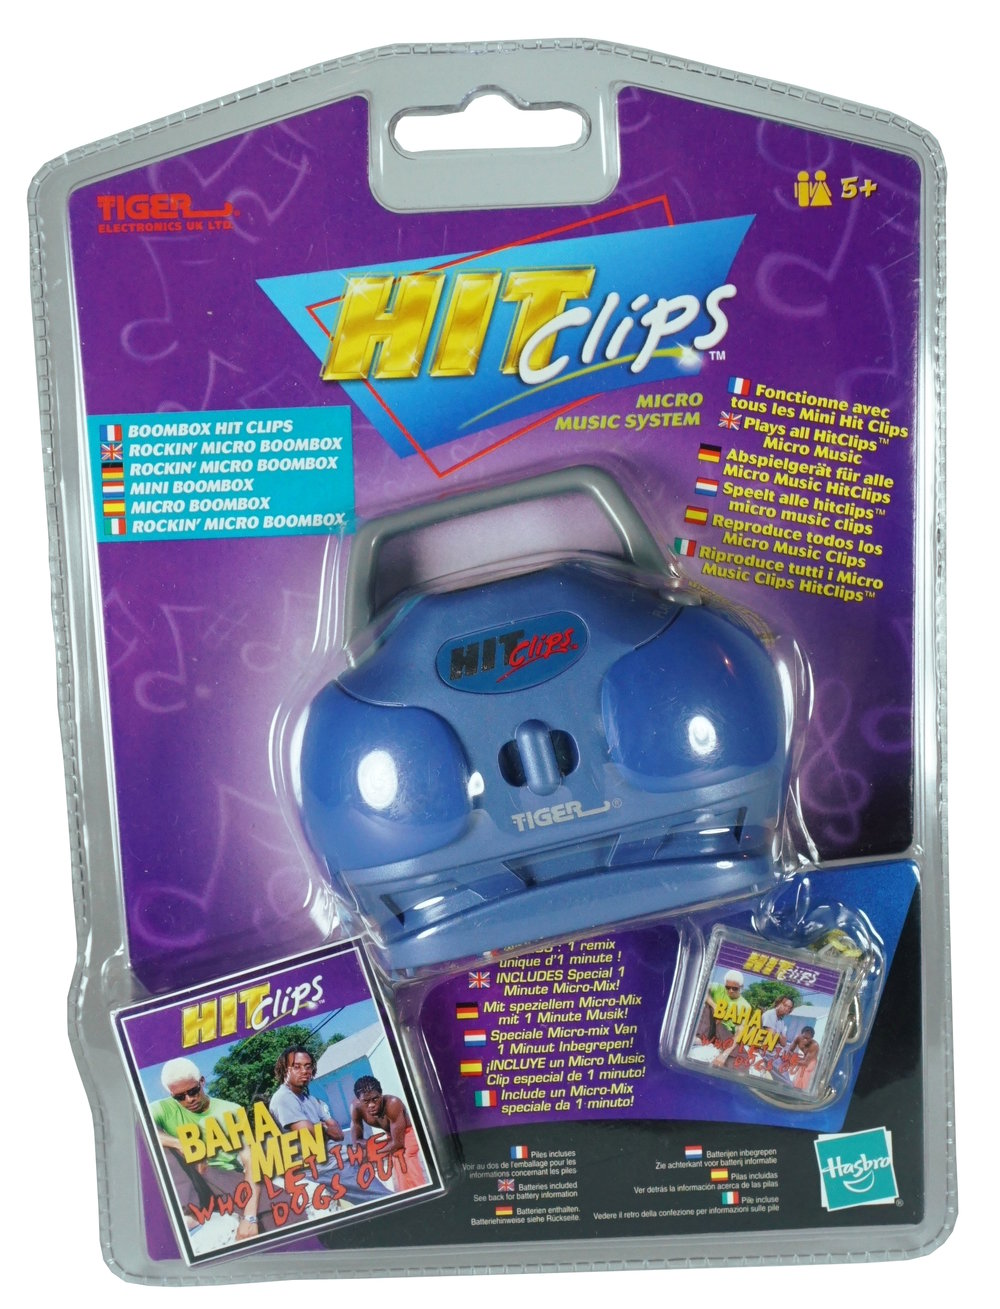 WLWLTDOO-2002-TOY-TIGER_HIT_CLIPS-BOOMBOX-FRONT.jpg